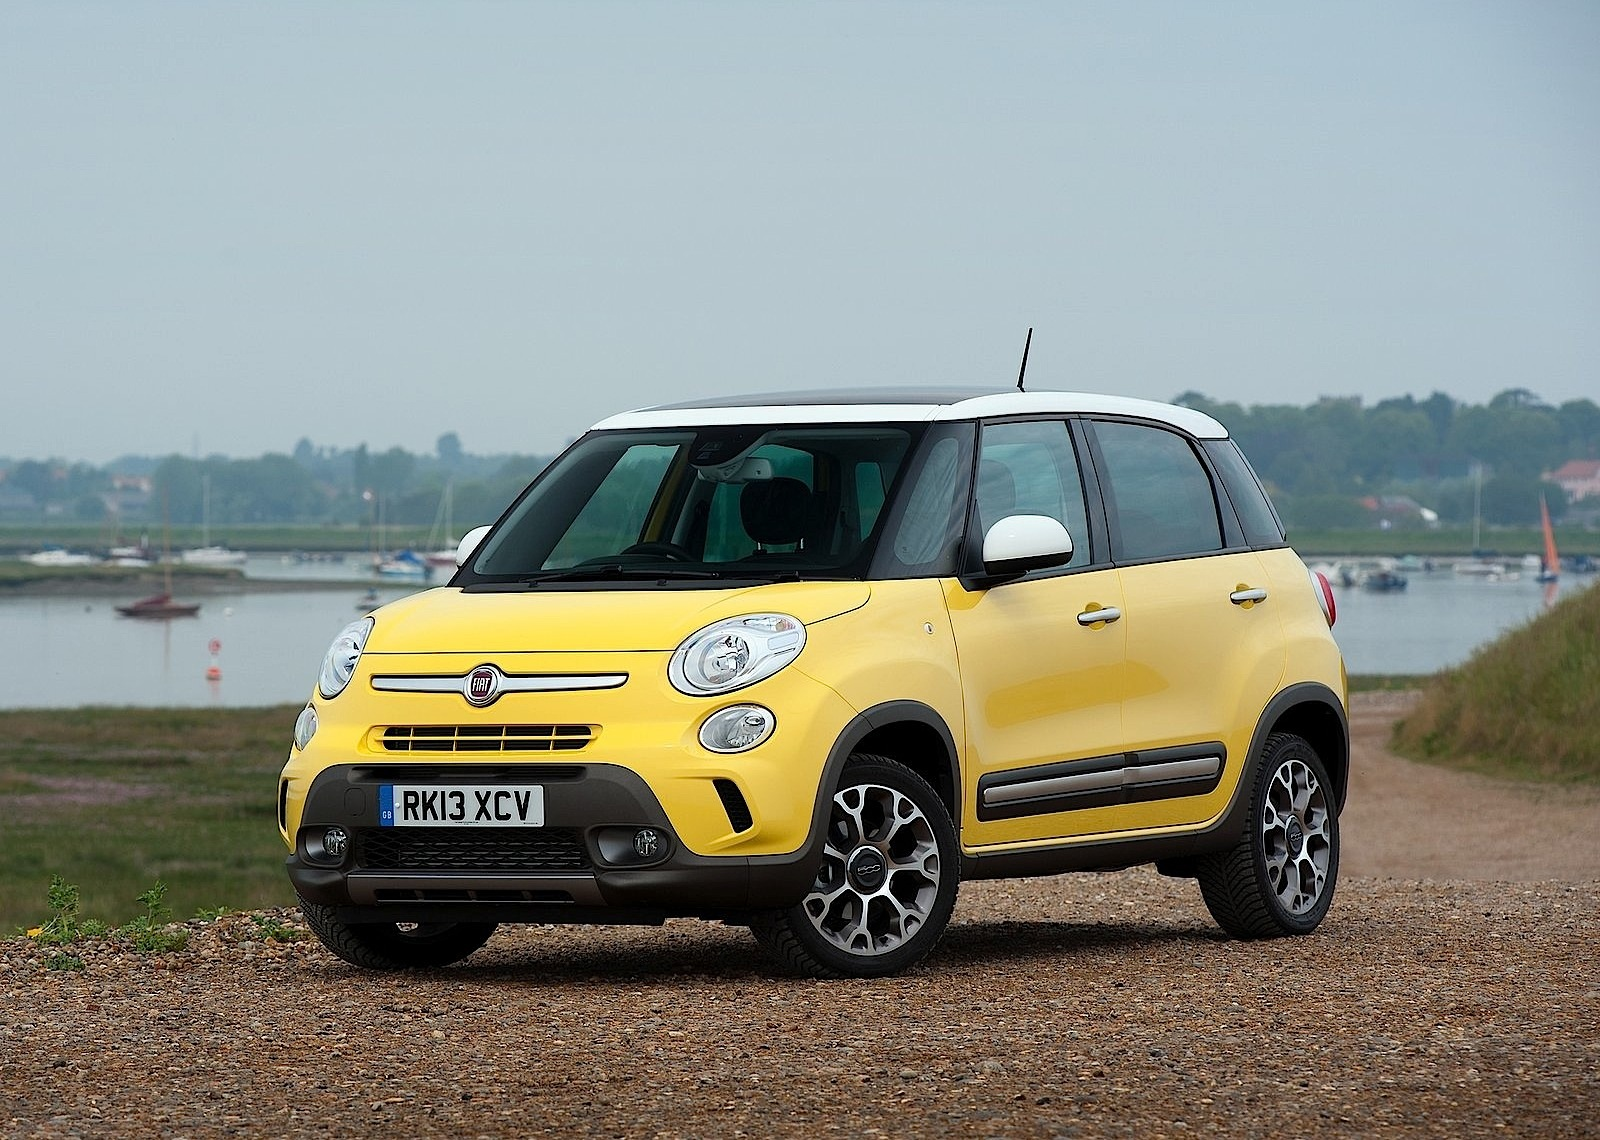 fiat 500l trekking specs 2013 2014 2015 2016 2017 autoevolution. Black Bedroom Furniture Sets. Home Design Ideas